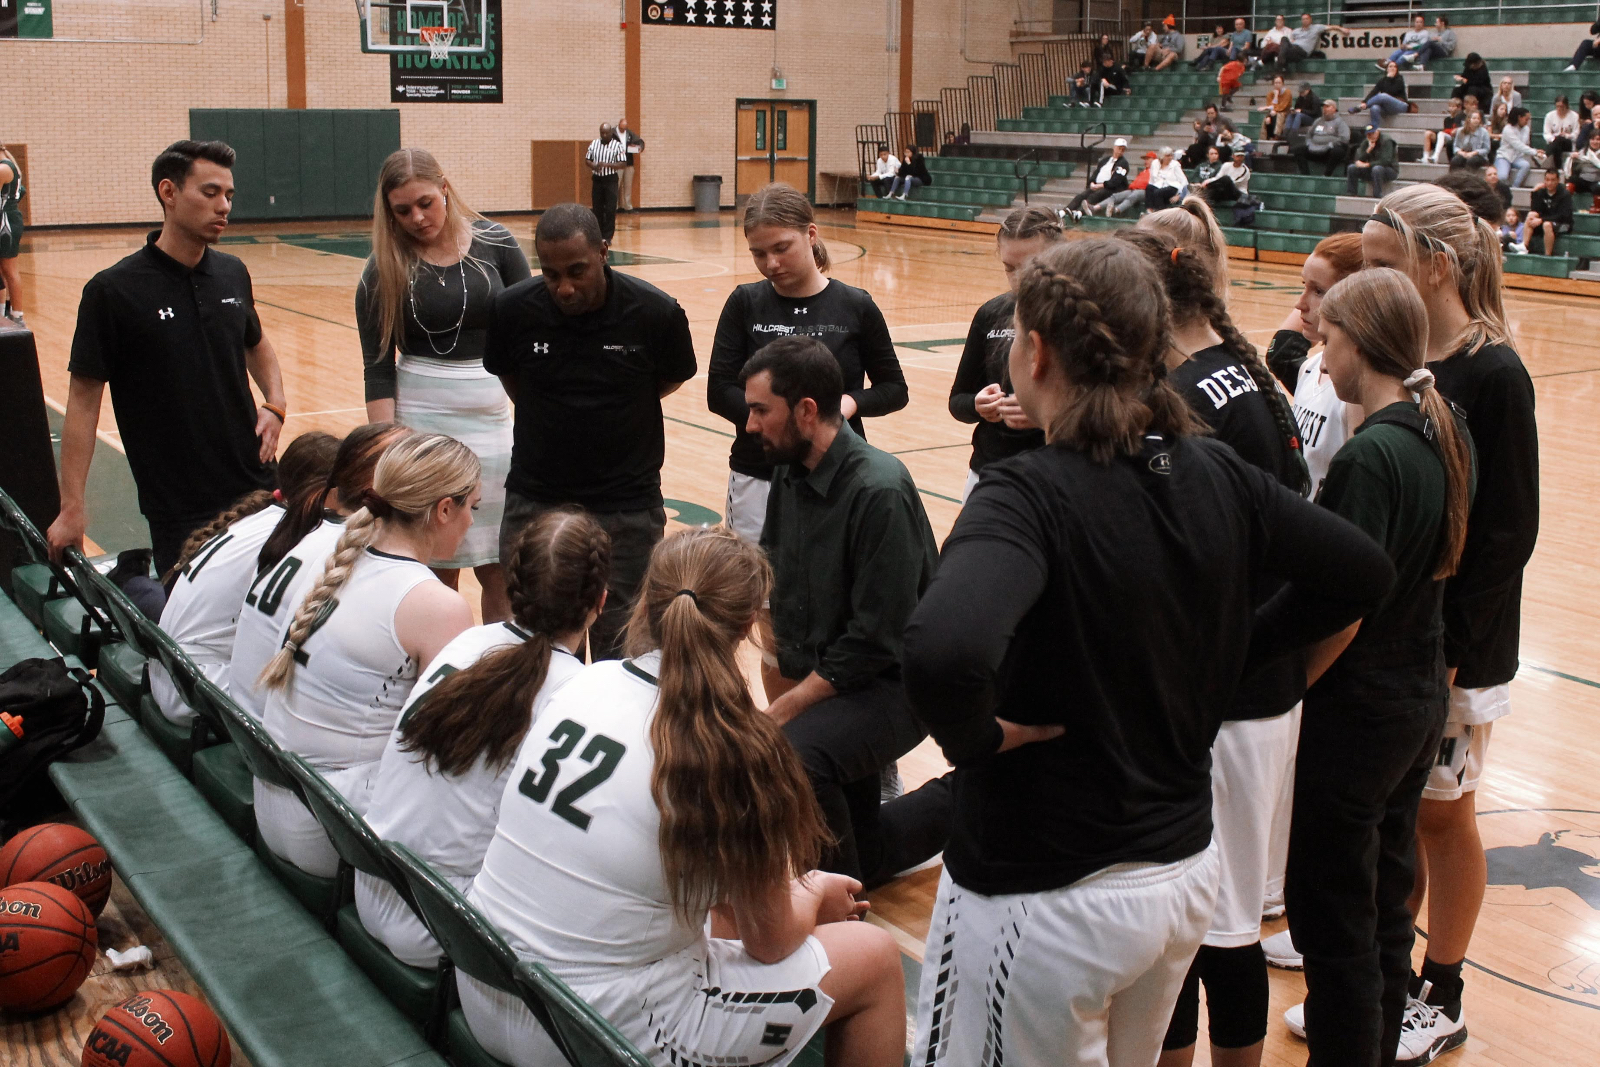 Lots of success for Hillcrest Women's Basketball Team!